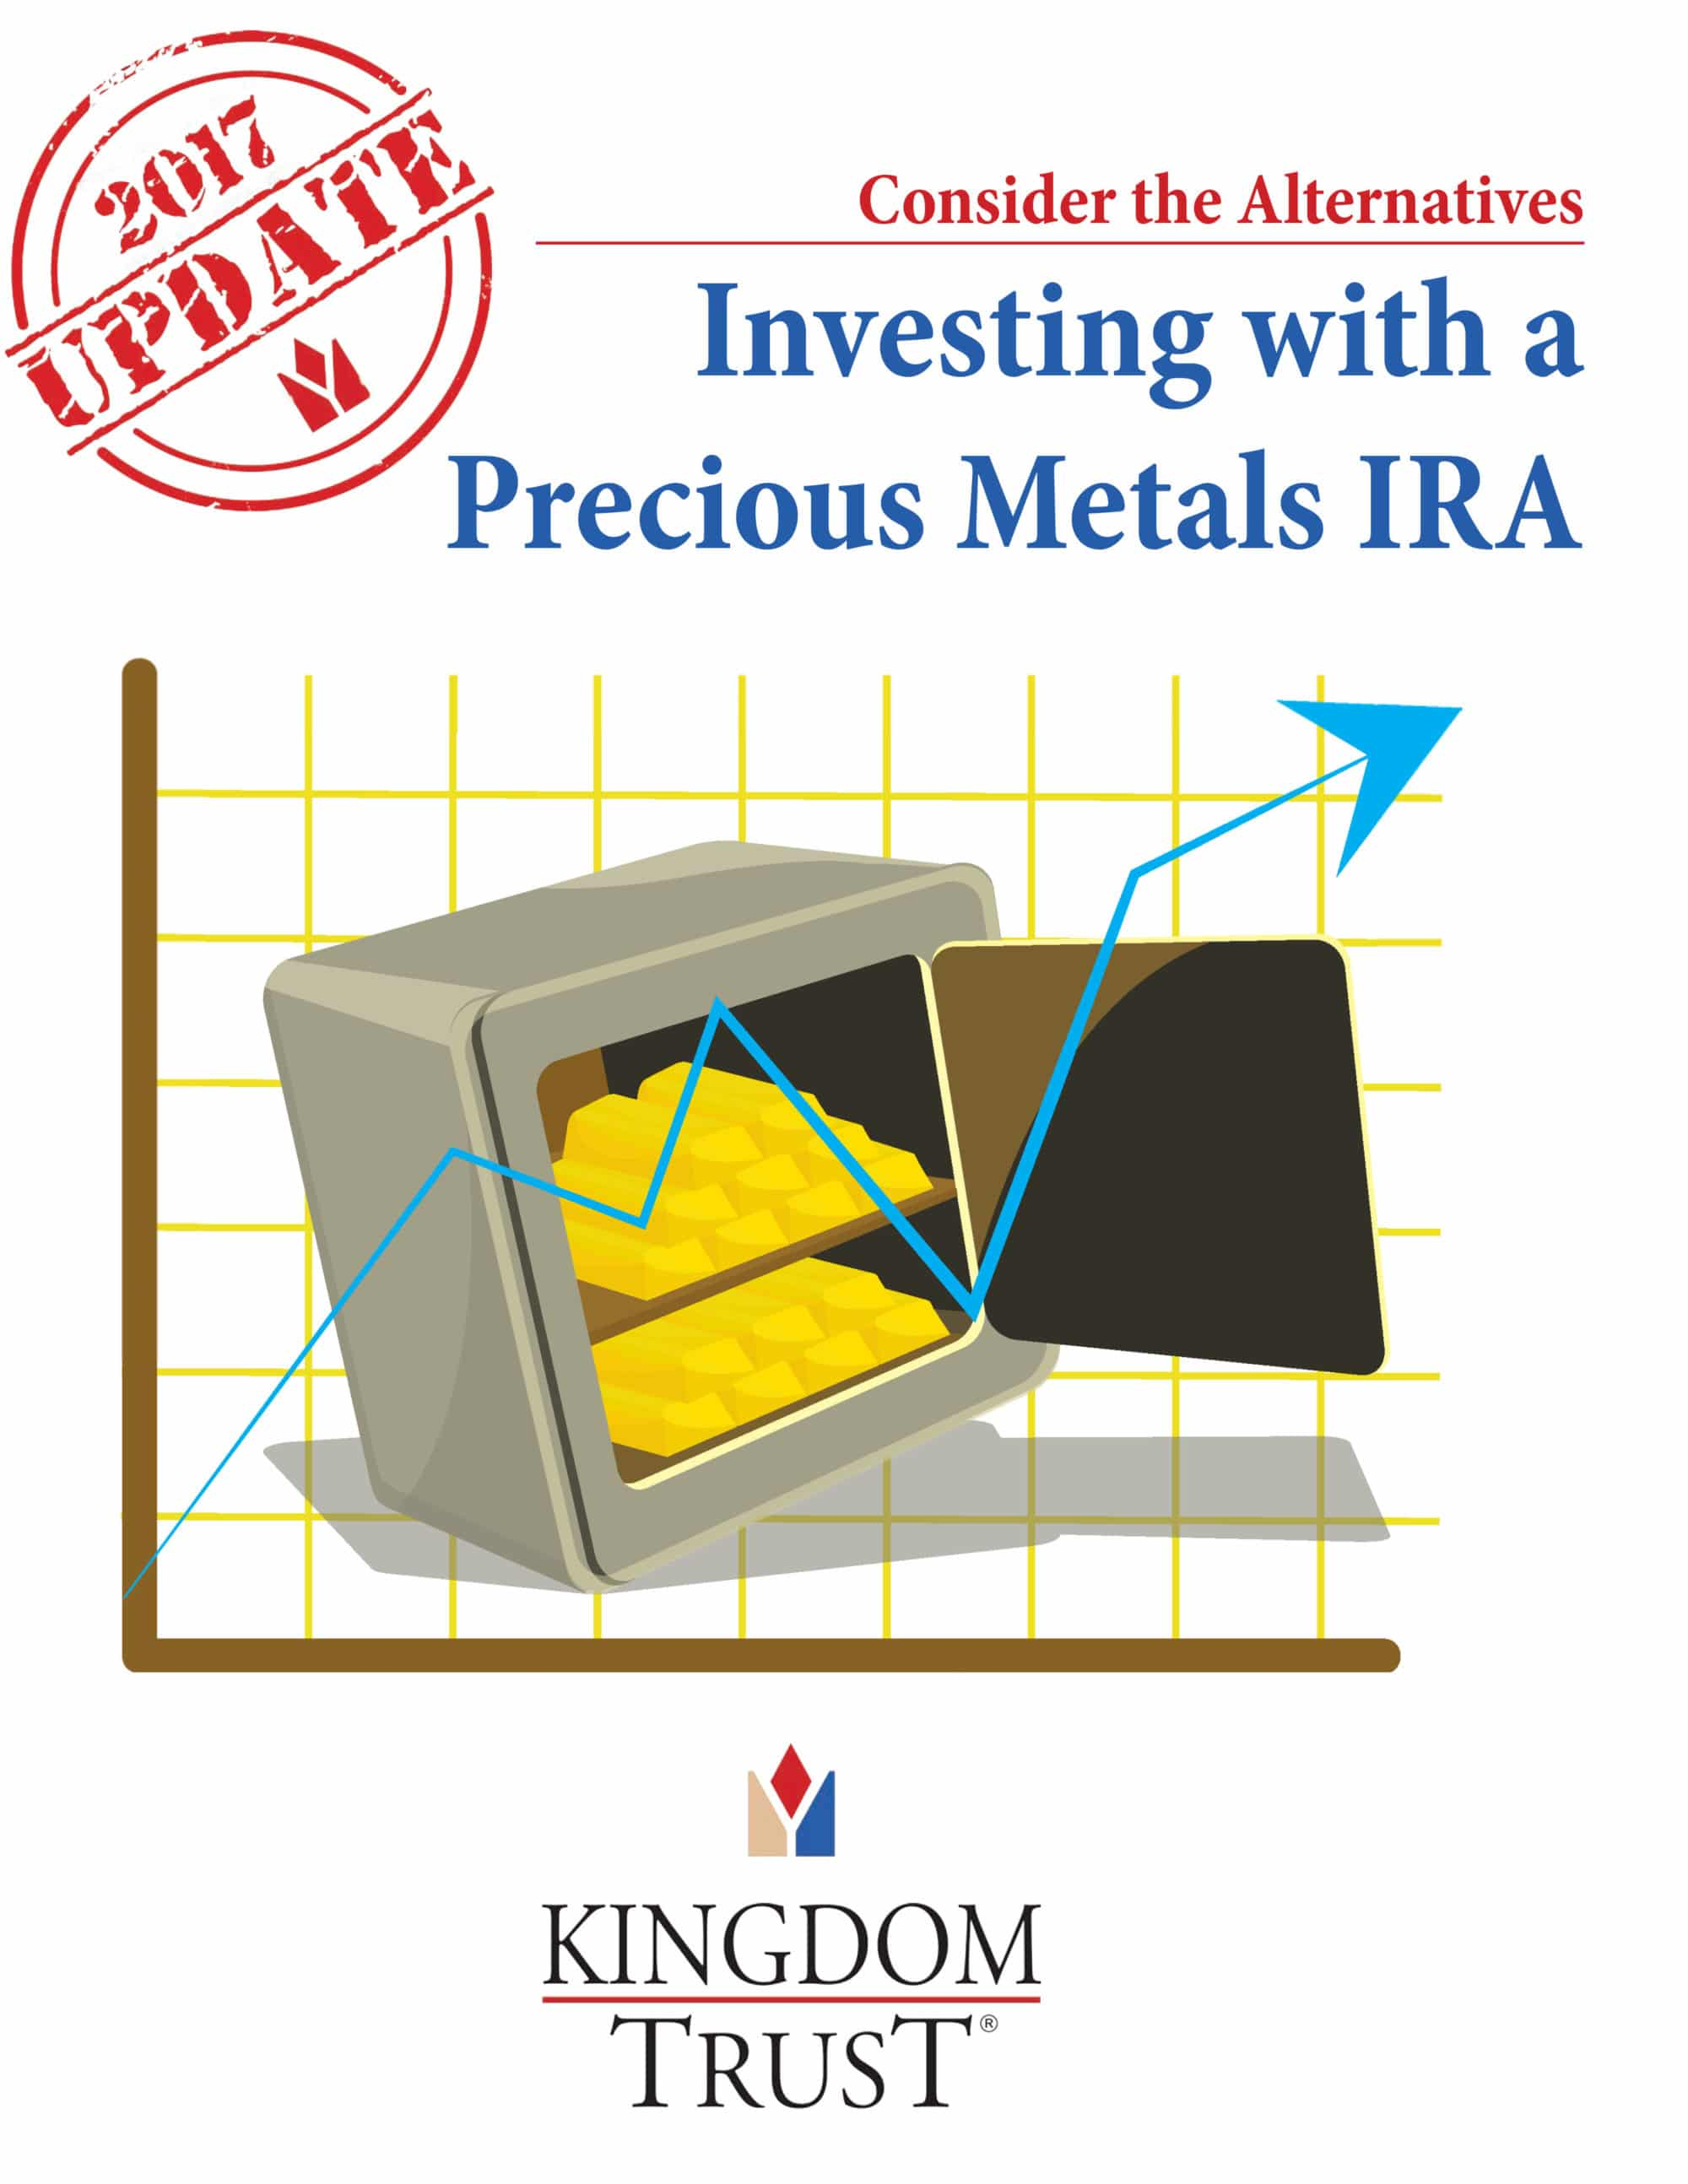 Investing with a Precious Metals IRA